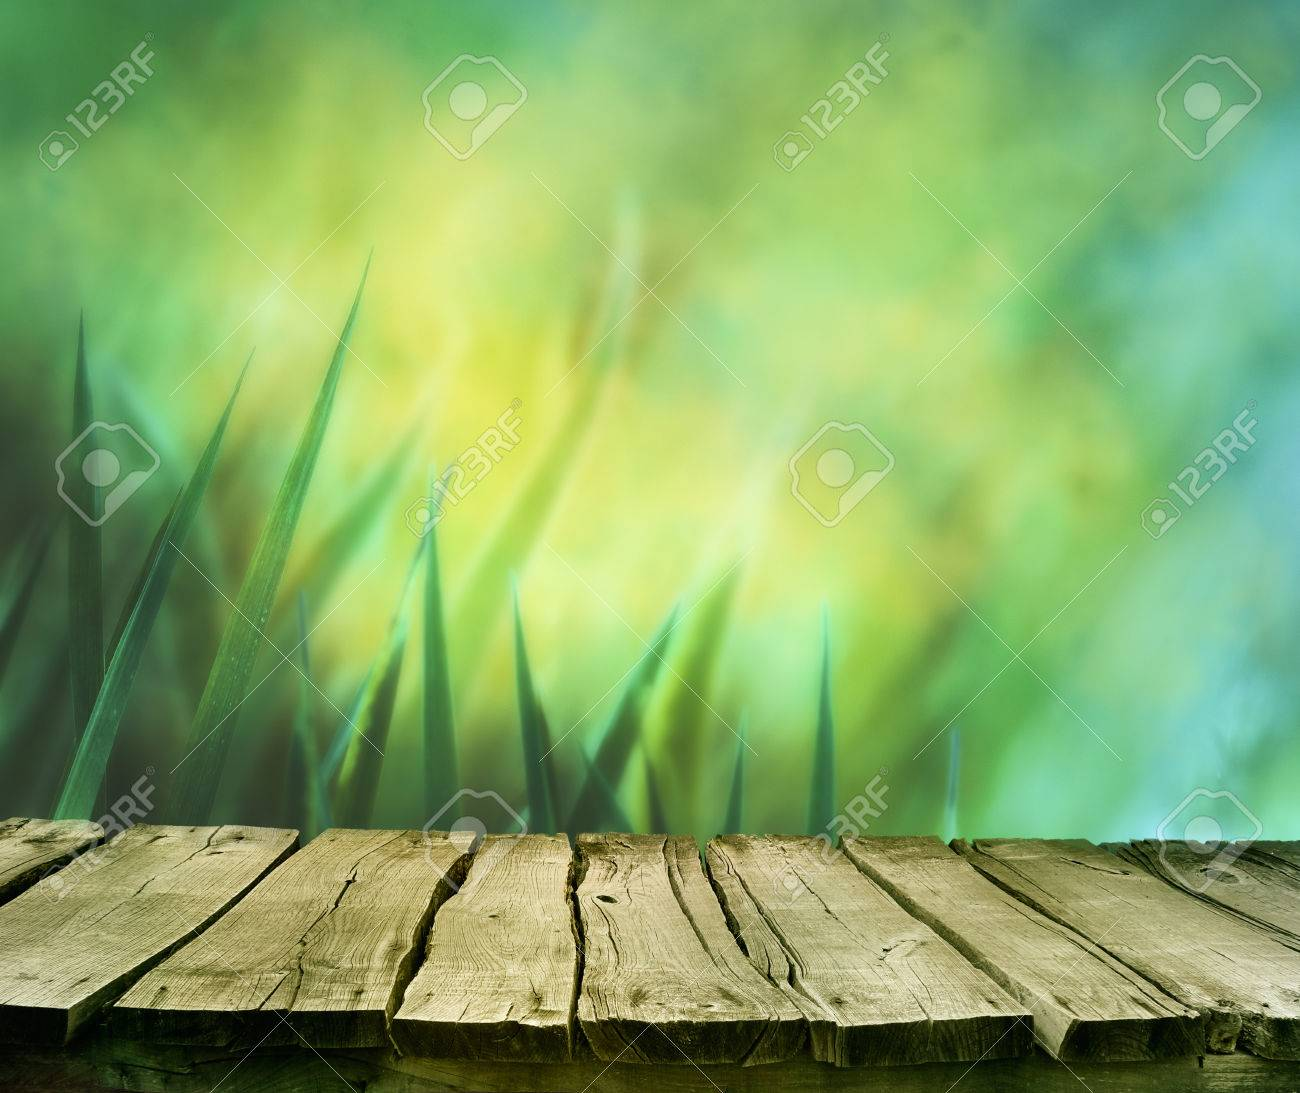 Spring background. Spring grass. Blur background. Summer nature. Bokeh blurred background.Wooden table. Wood planksGrass with copyspace. Floral background .Nature bokeh - 74163747